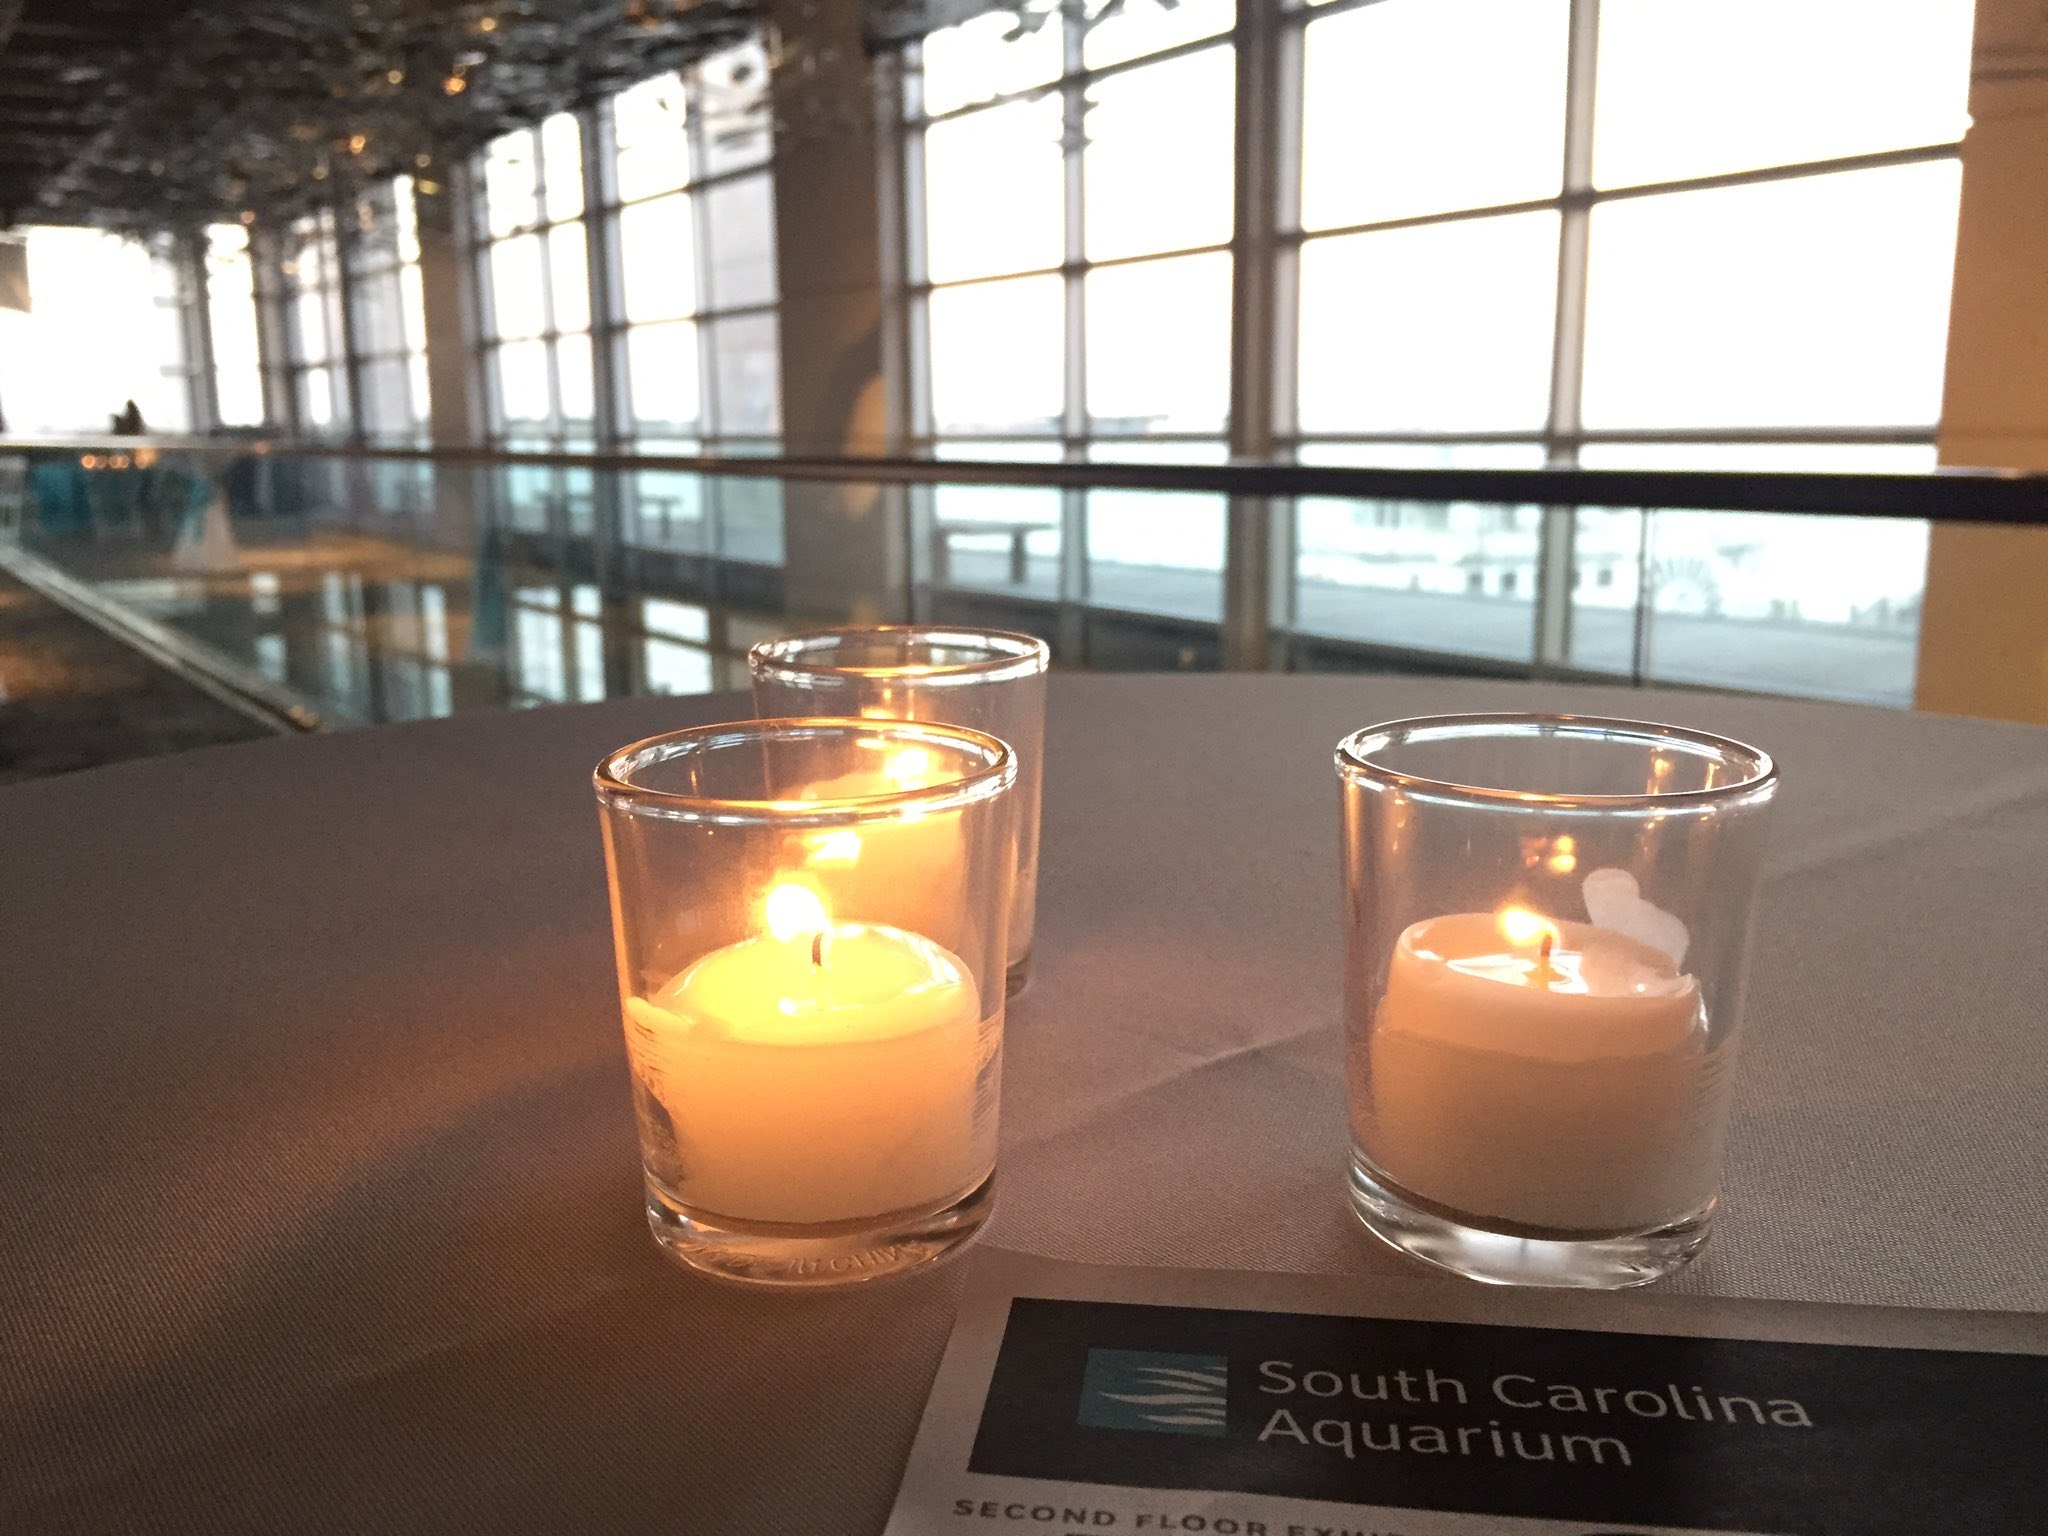 Beautiful facility and evening with #NMEA17. Thank you, @NatlMarineEd https://t.co/uSOR2icWm4